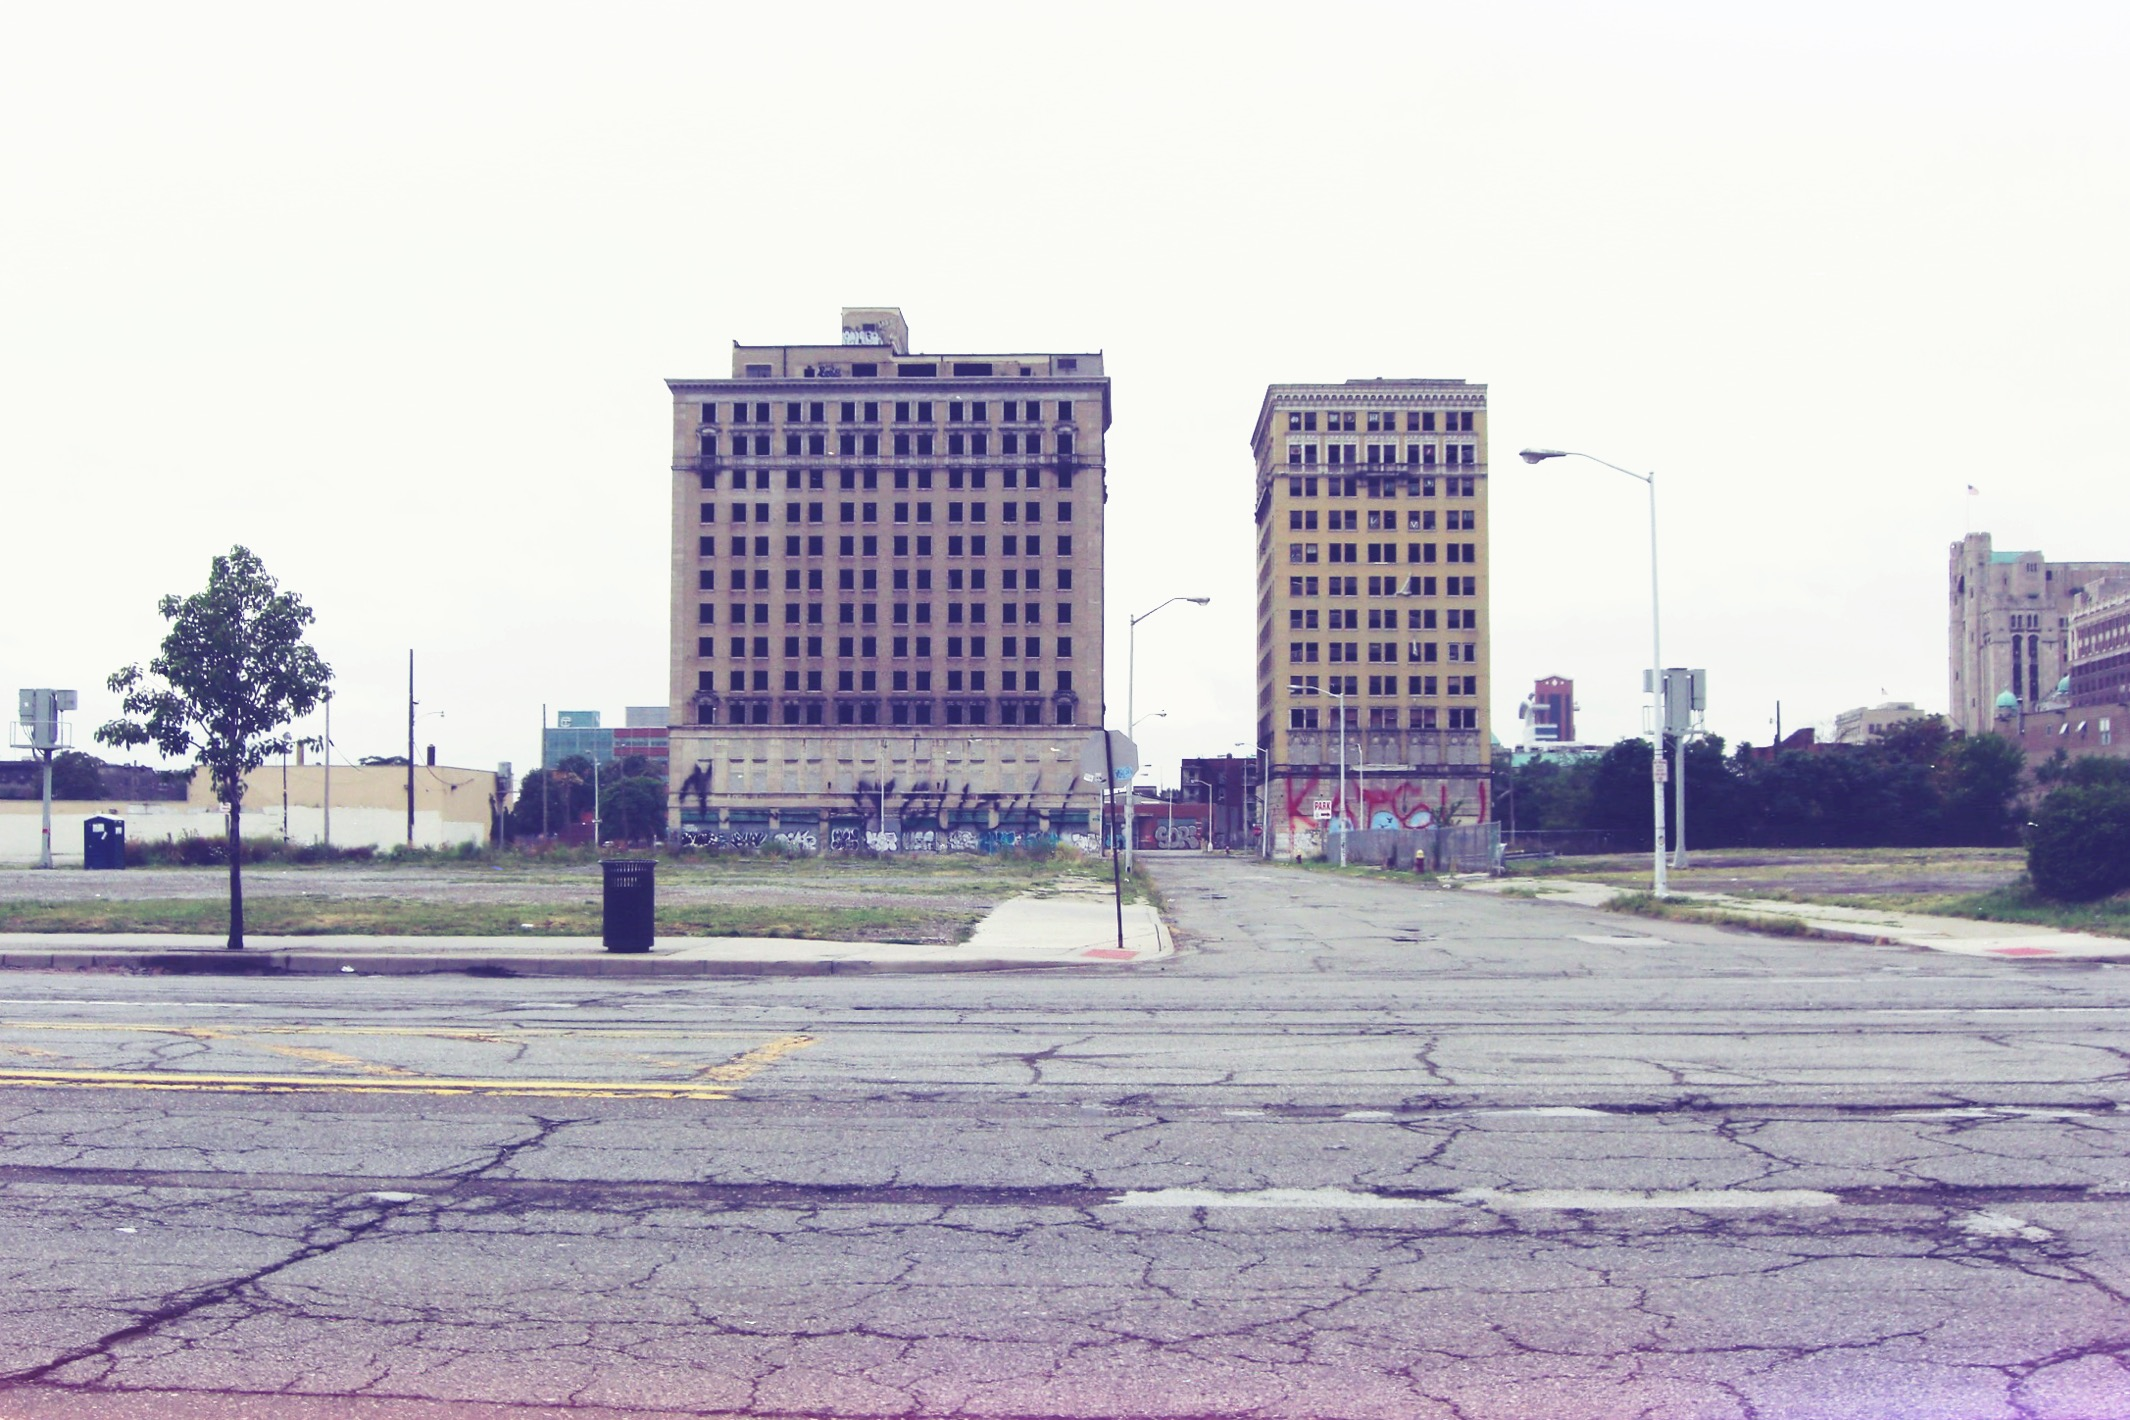 Parts of Midtown remain scarred and desolate.